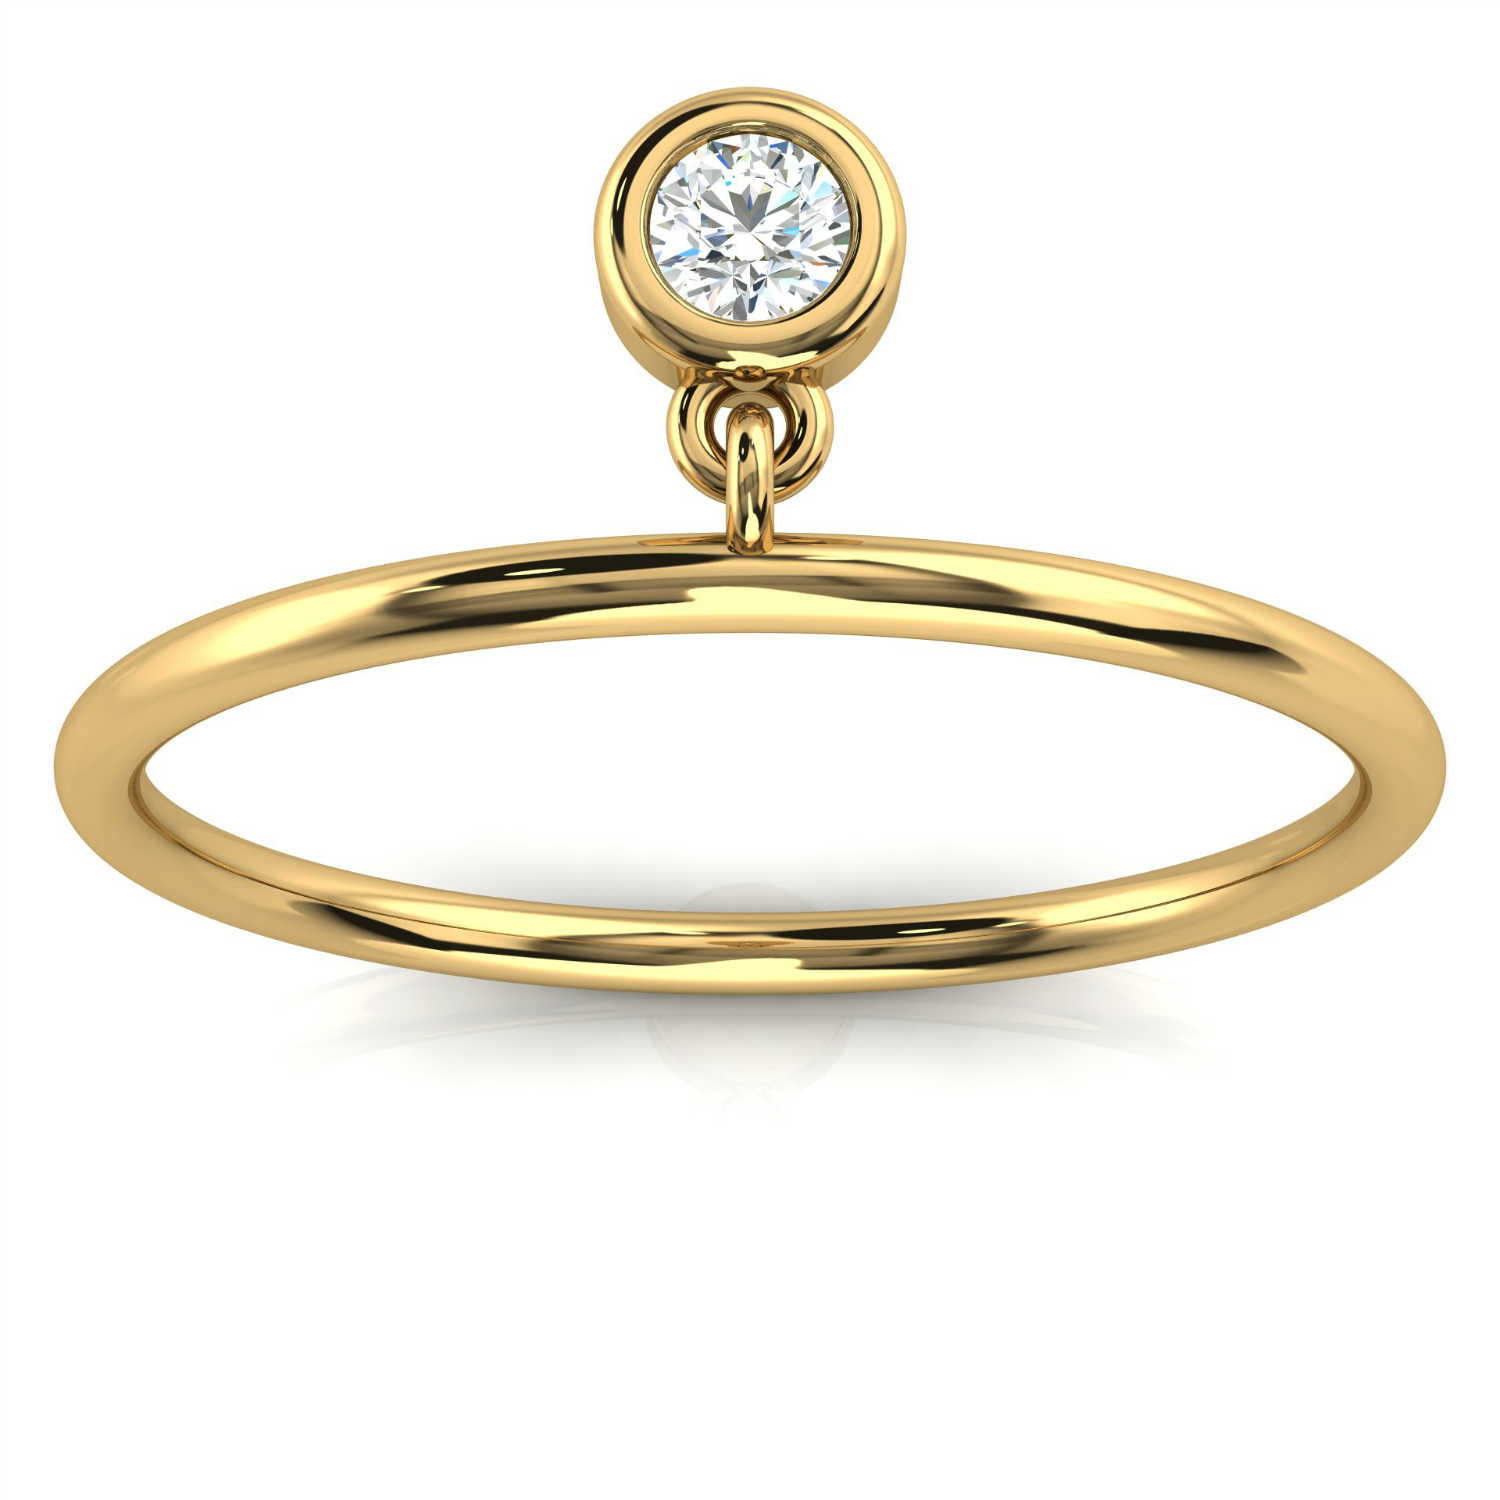 14k Yellow Gold Hayley Bezel Minimalist Organic Design Diamond Ring (1/20 ct. tw)